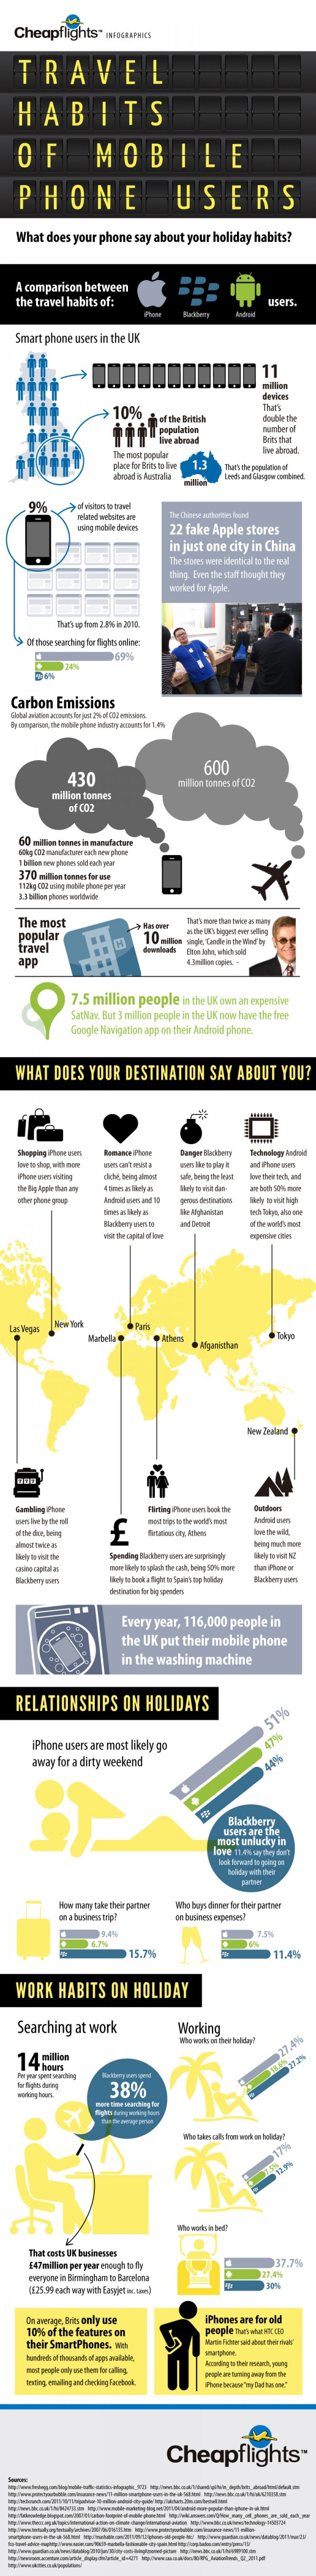 travel habits of mobile phone users